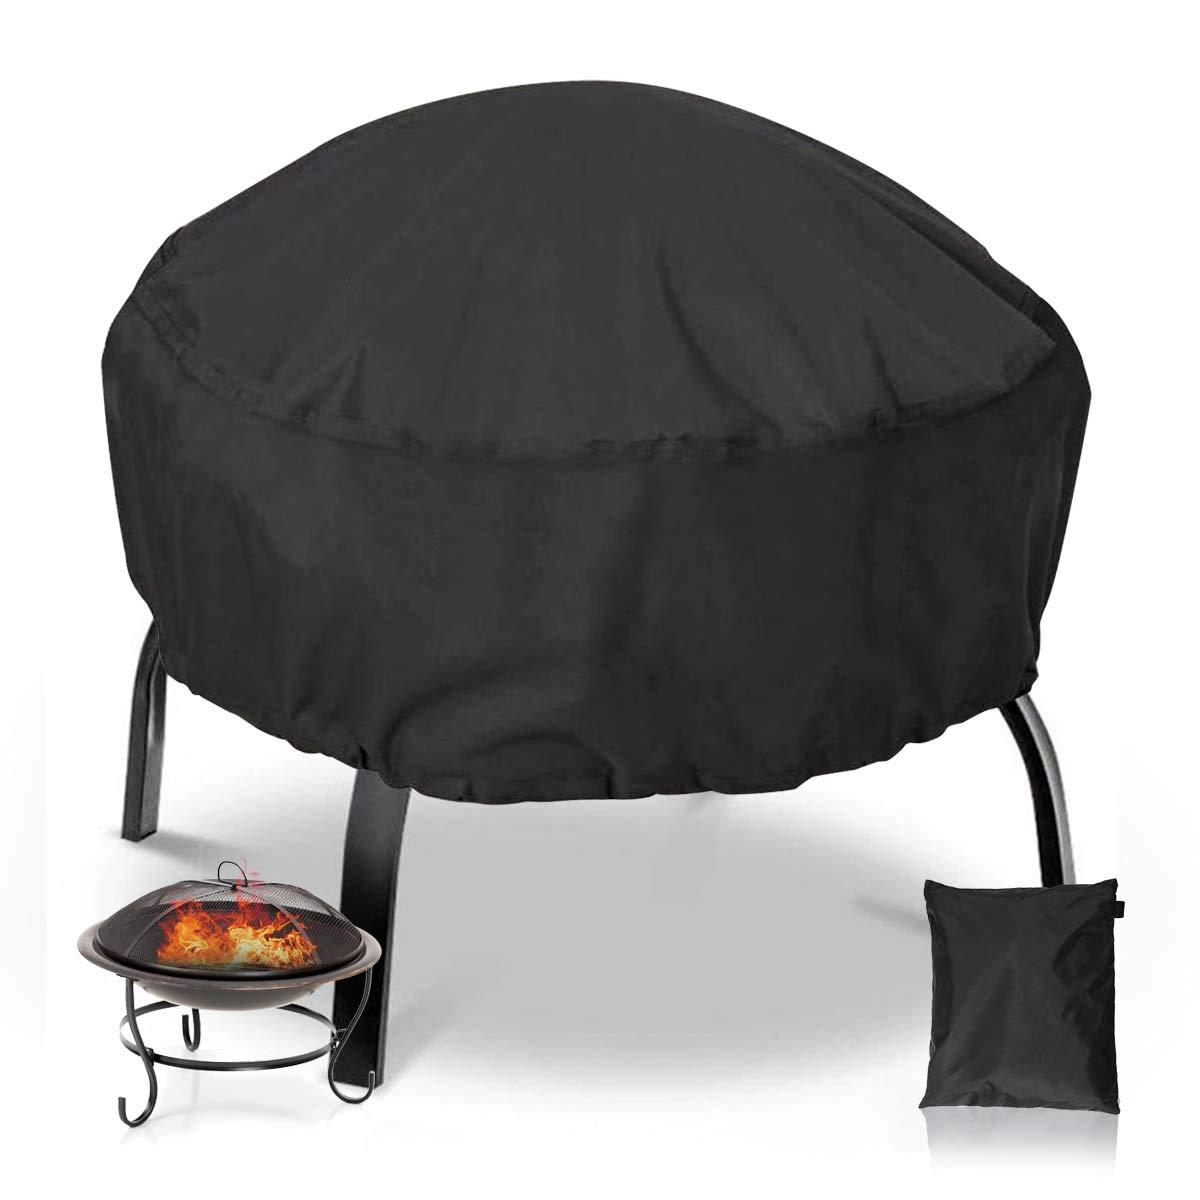 NASUM Fire Pit Cover Round 36x36 Inch Waterproof 420D Heavy Duty Round Patio Fire Bowl Cover Round Firepit Cover with Thick PVC Coating - Black